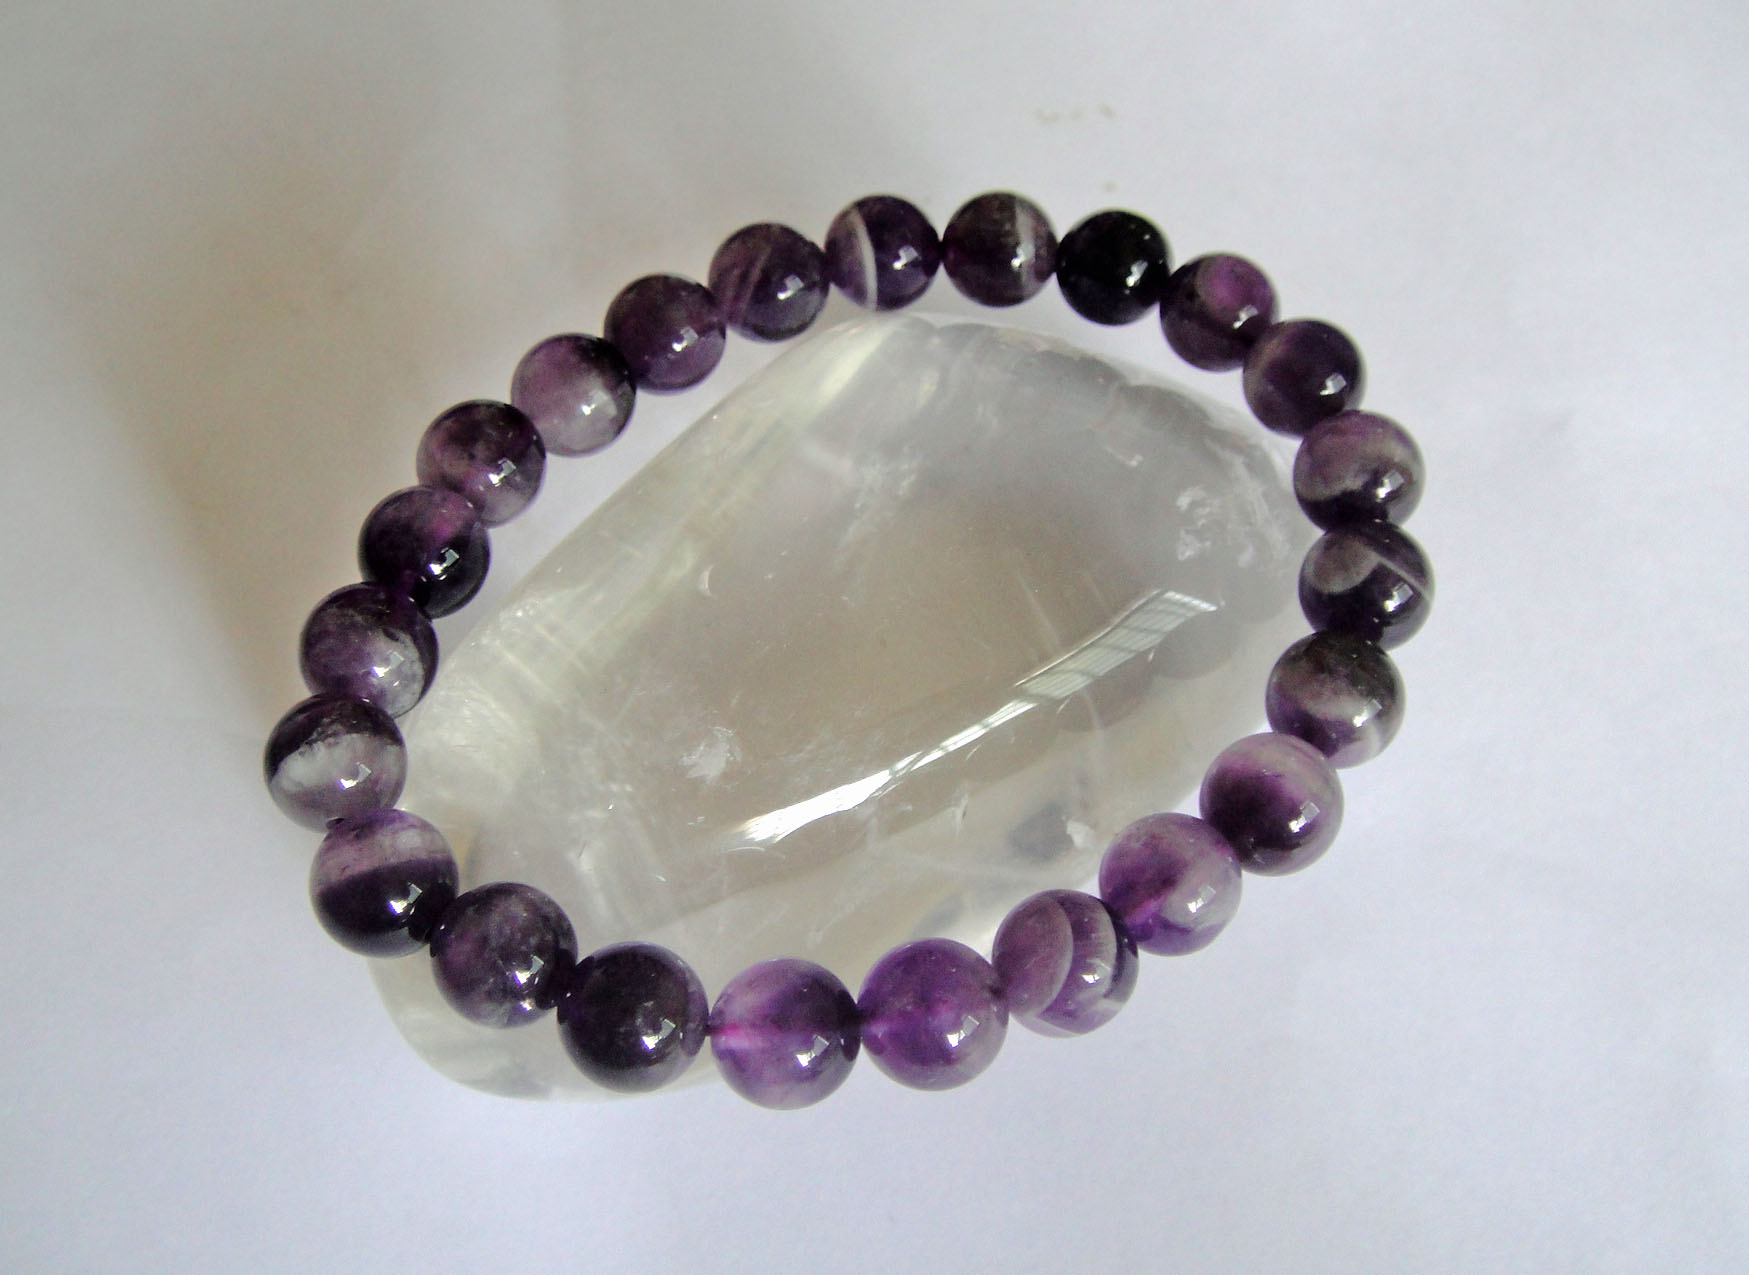 Chevron Amethyst Bracelet  8mm Beads -SOLD OUT